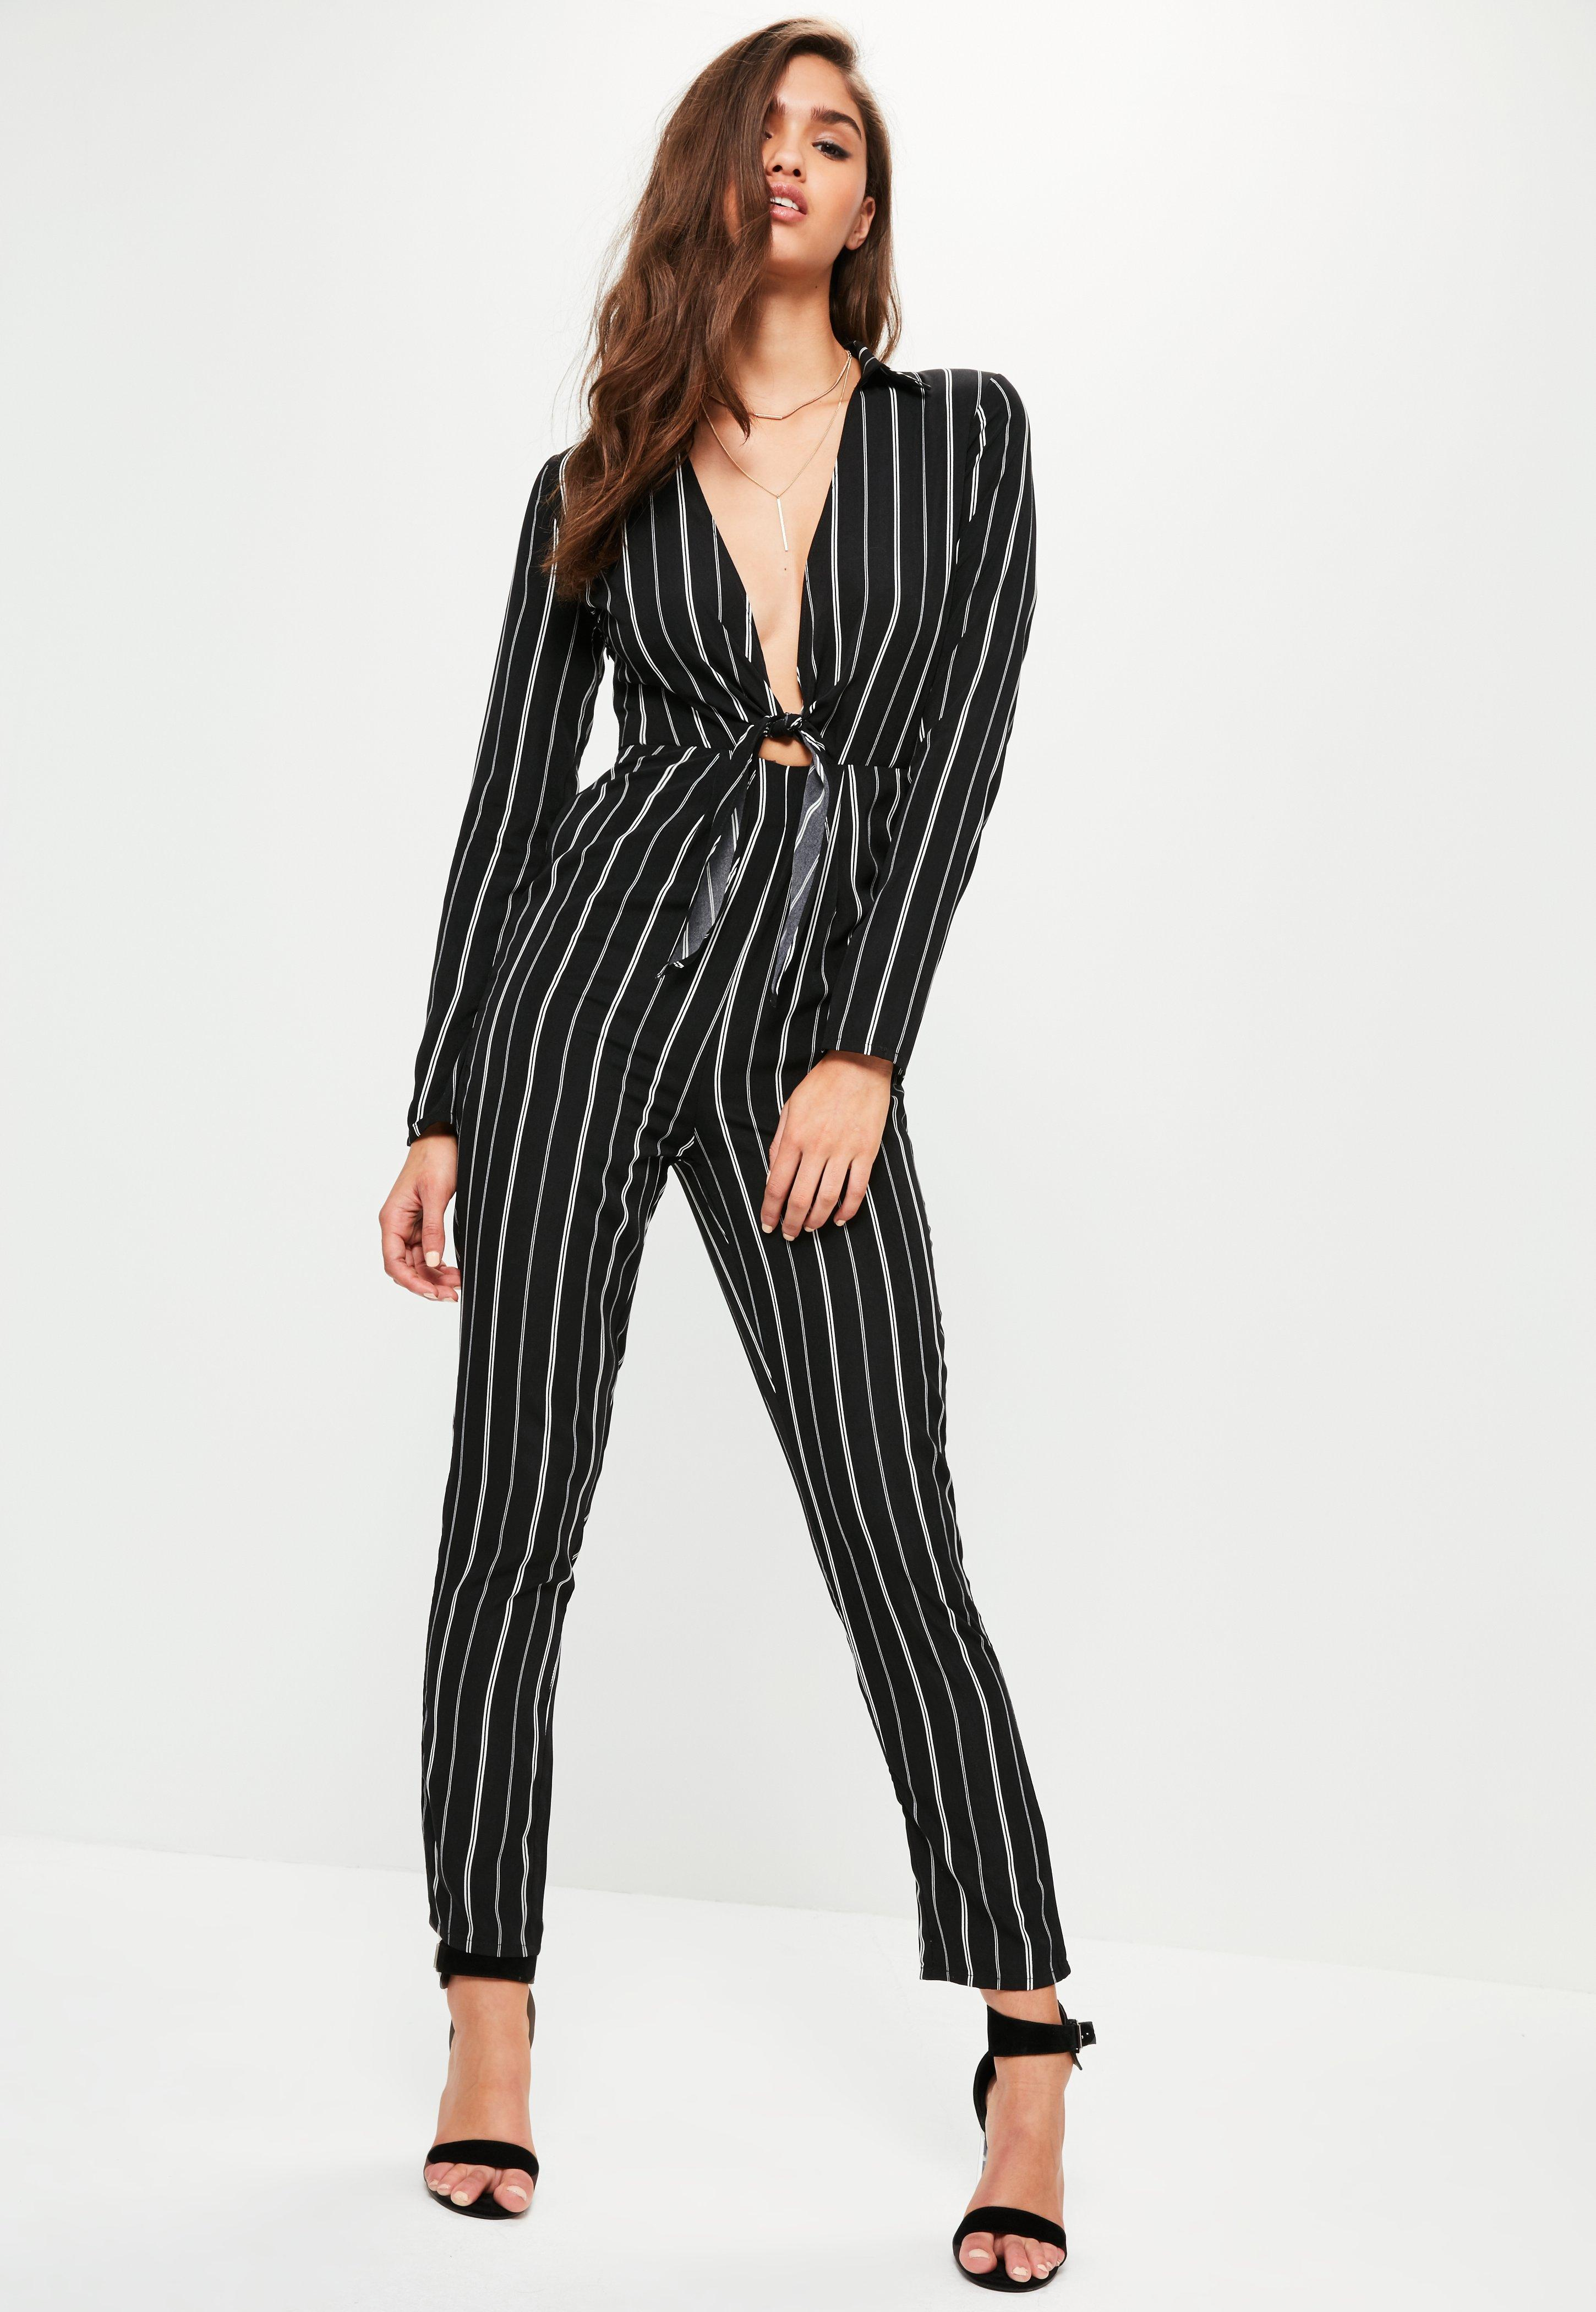 8d8ce5d83a Missguided Black Striped Tie Front Shirt Jumpsuit in Black - Lyst